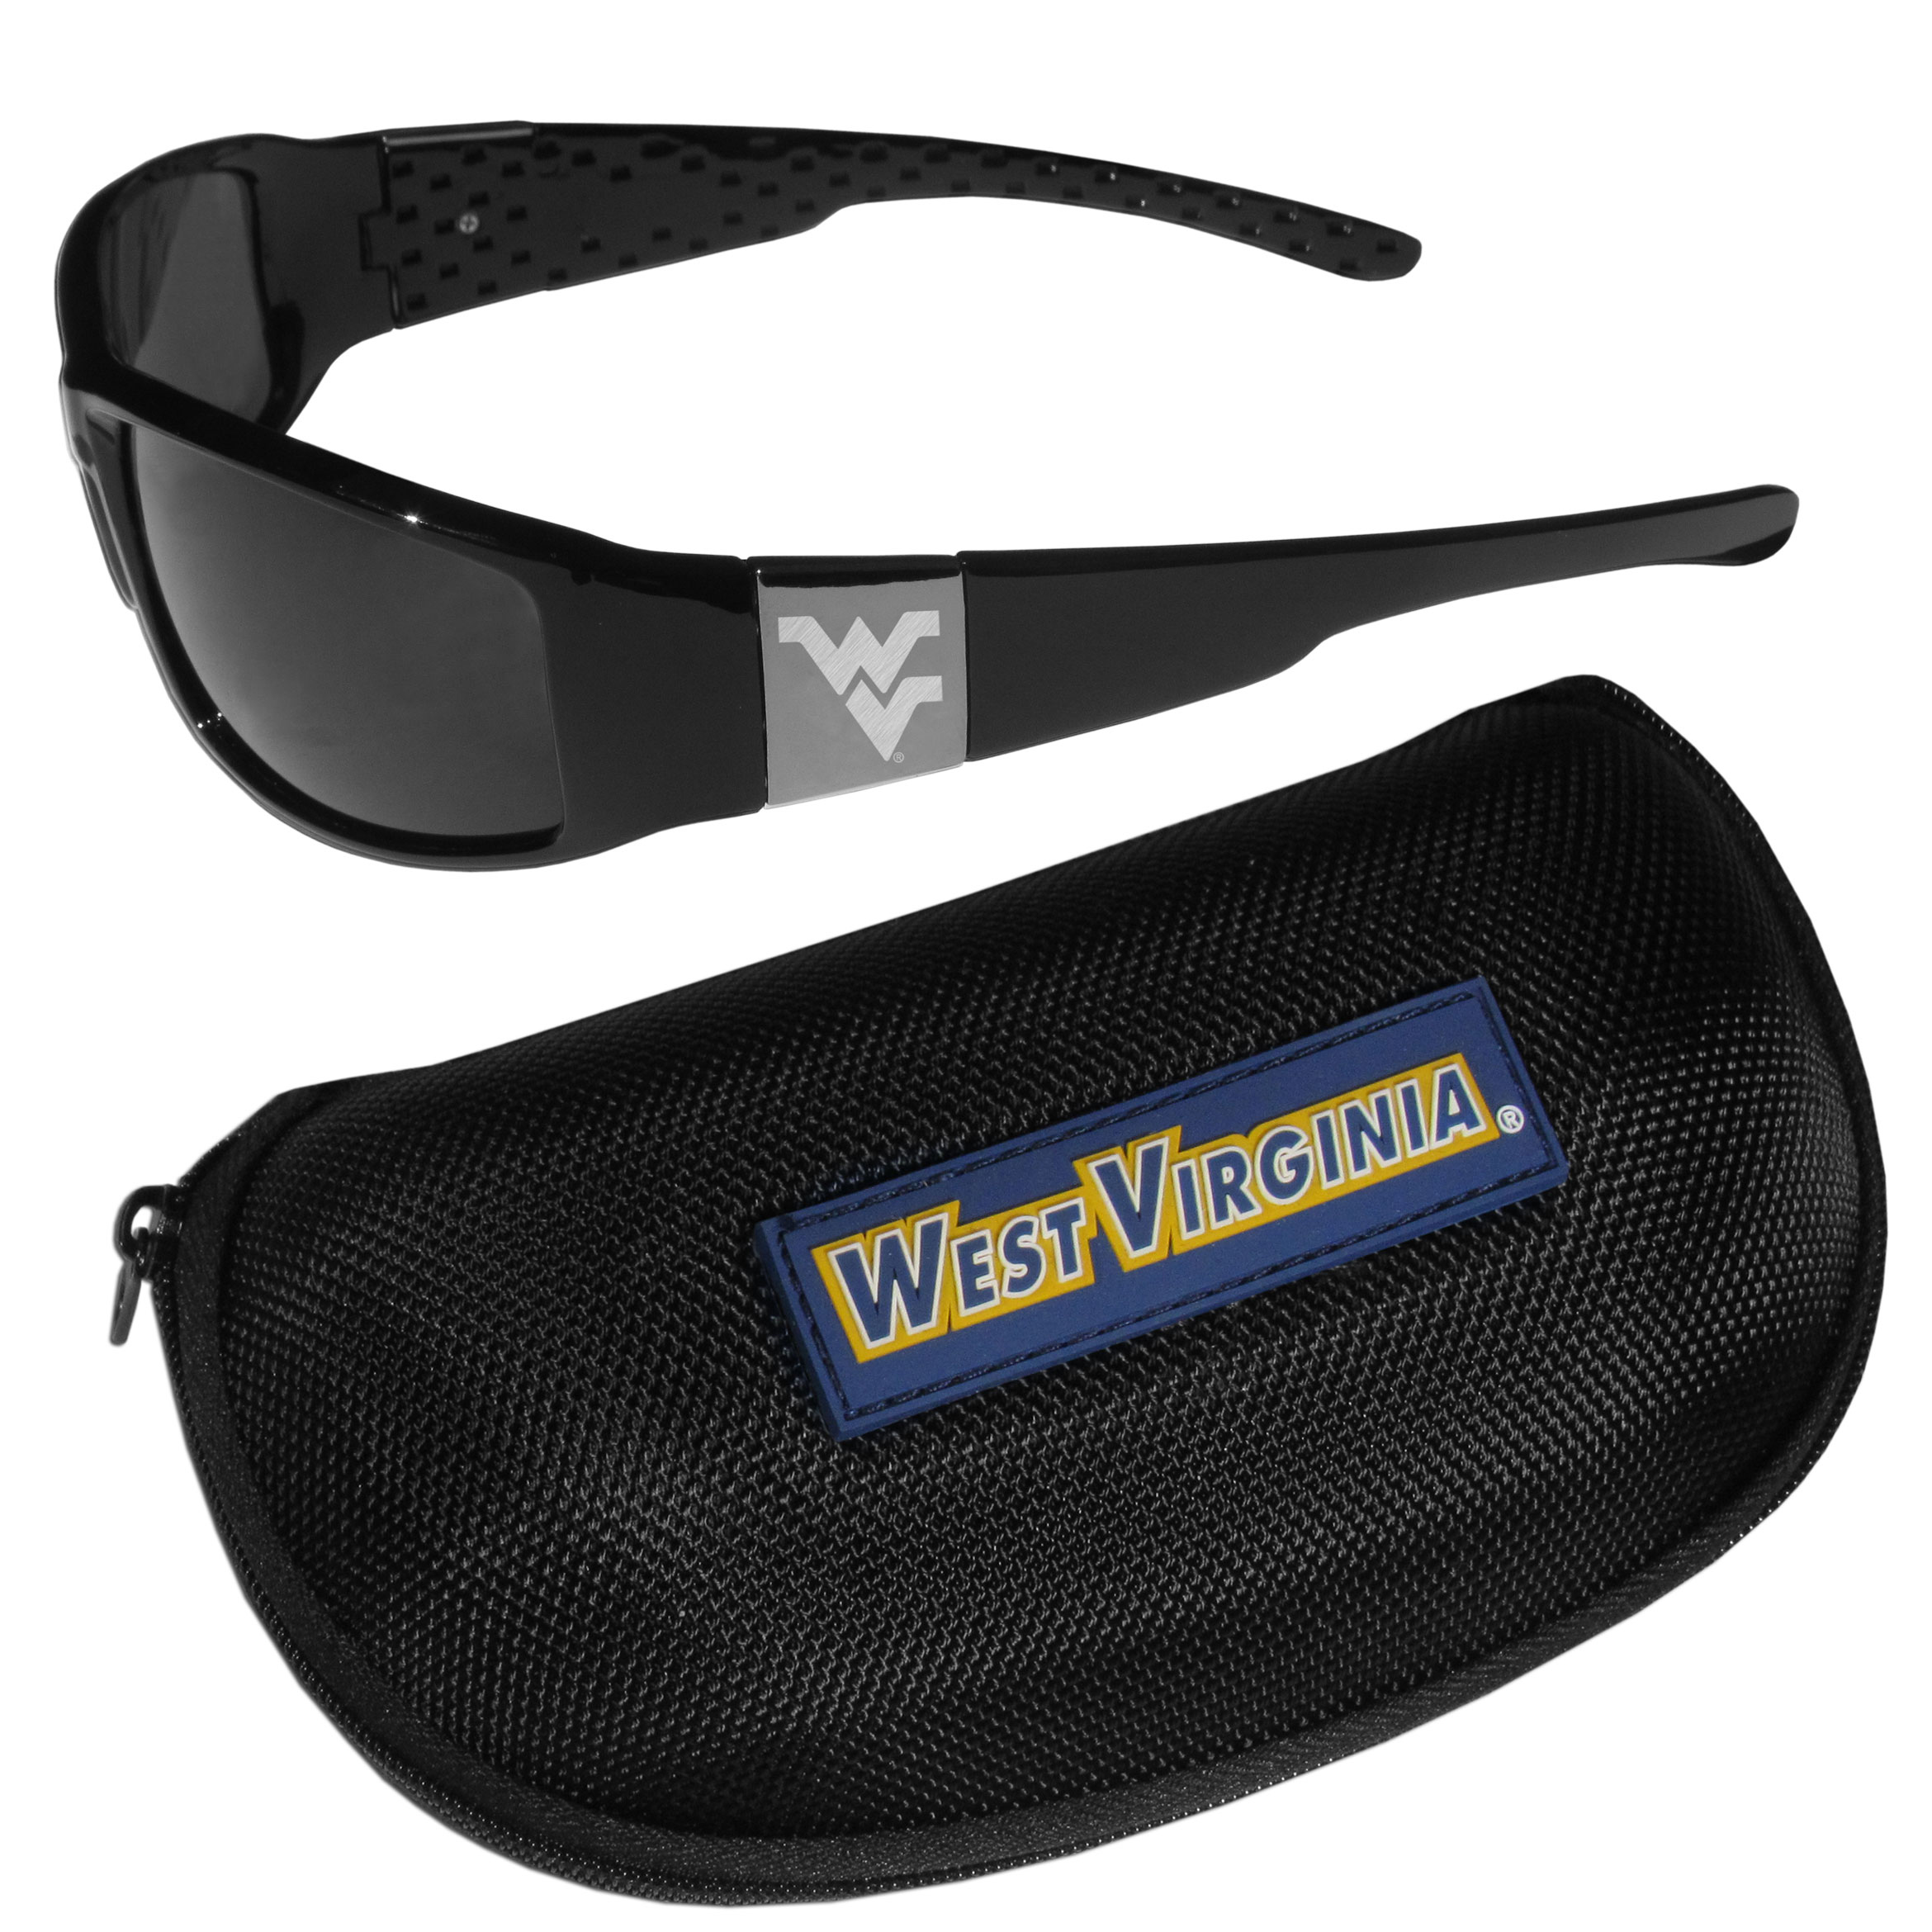 W. Virginia Mountaineers Chrome Wrap Sunglasses and Zippered Carrying Case - These designer inspired frames have a sleek look in all black with high-polish chrome W. Virginia Mountaineers shields on each arm with an etched logo. The shades are perfect any outdoor activity like; golfing, driving, hiking, fishing or cheering on the team at a tailgating event or an at home game day BBQ with a lens rating of 100% UVA/UVB for maximum UV protection. The high-quality frames are as durable as they are fashionable and with their classic look they are perfect fan accessory that can be worn everyday for every occasion. The shades come with a zippered hard shell case to keep your sunglasses safe.